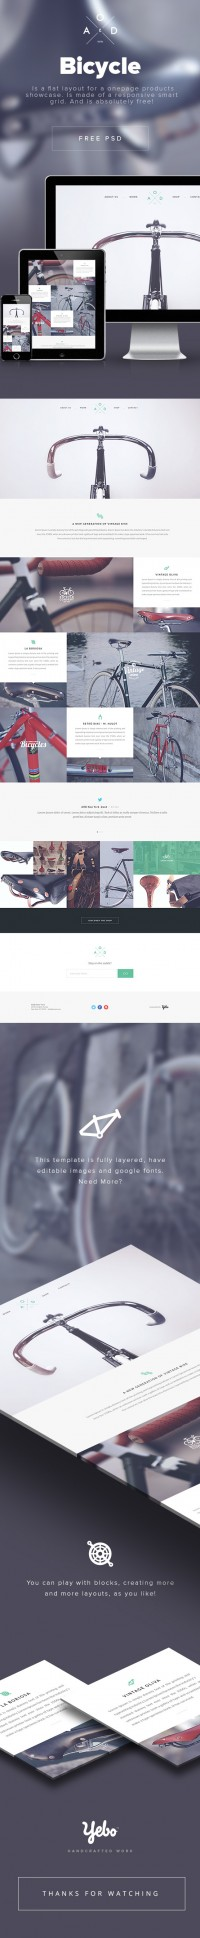 Bicycle Free PSD on